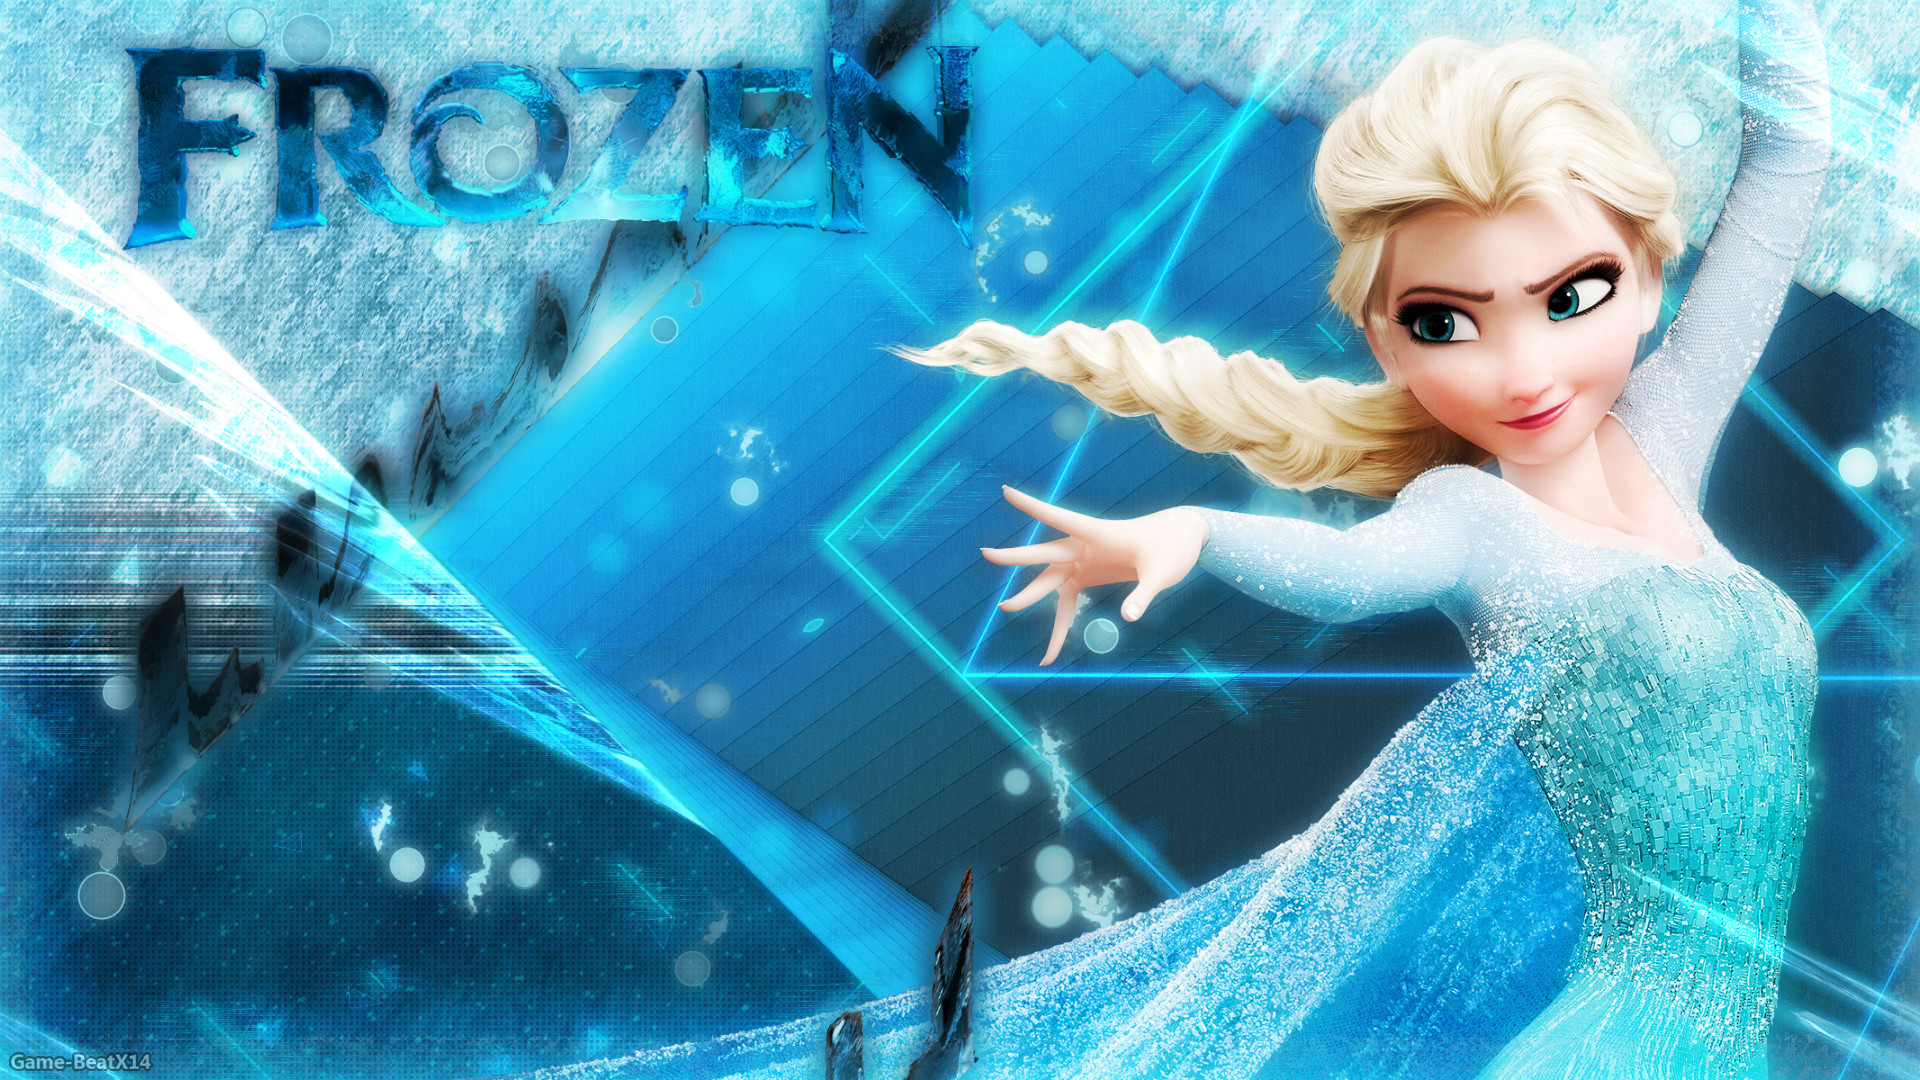 Res: 1920x1080, Elsa Frozen Wallpapers HD